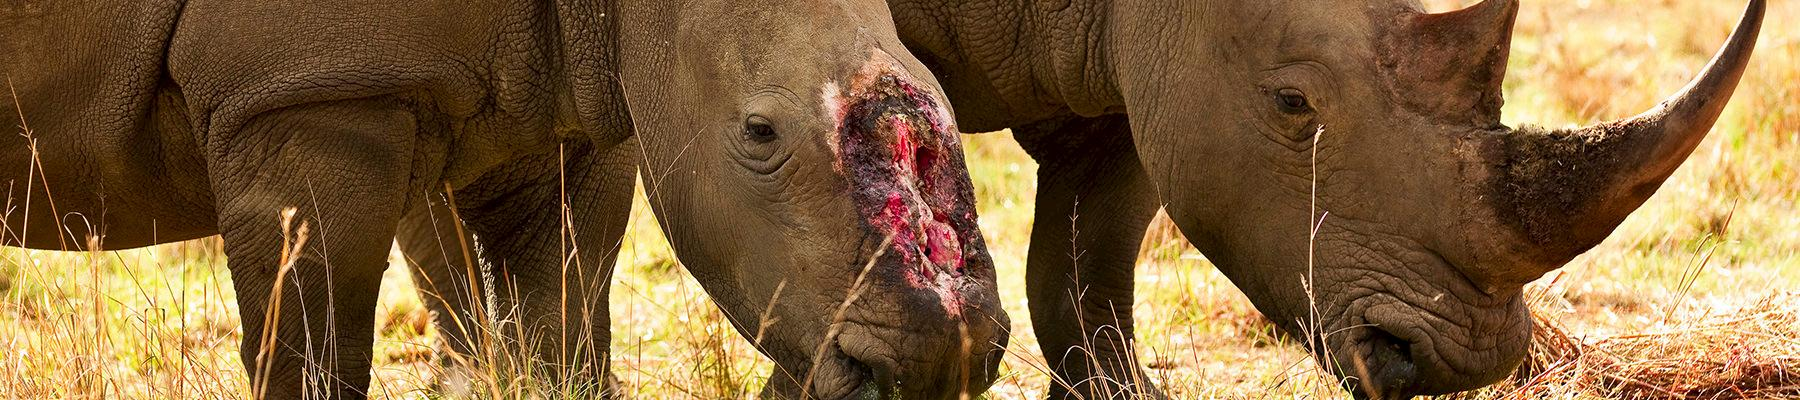 A female rhino who survived a brutal dehorning by poachers in Natal, South Africa © Brent Stirton / Getty Images / WWF-UK